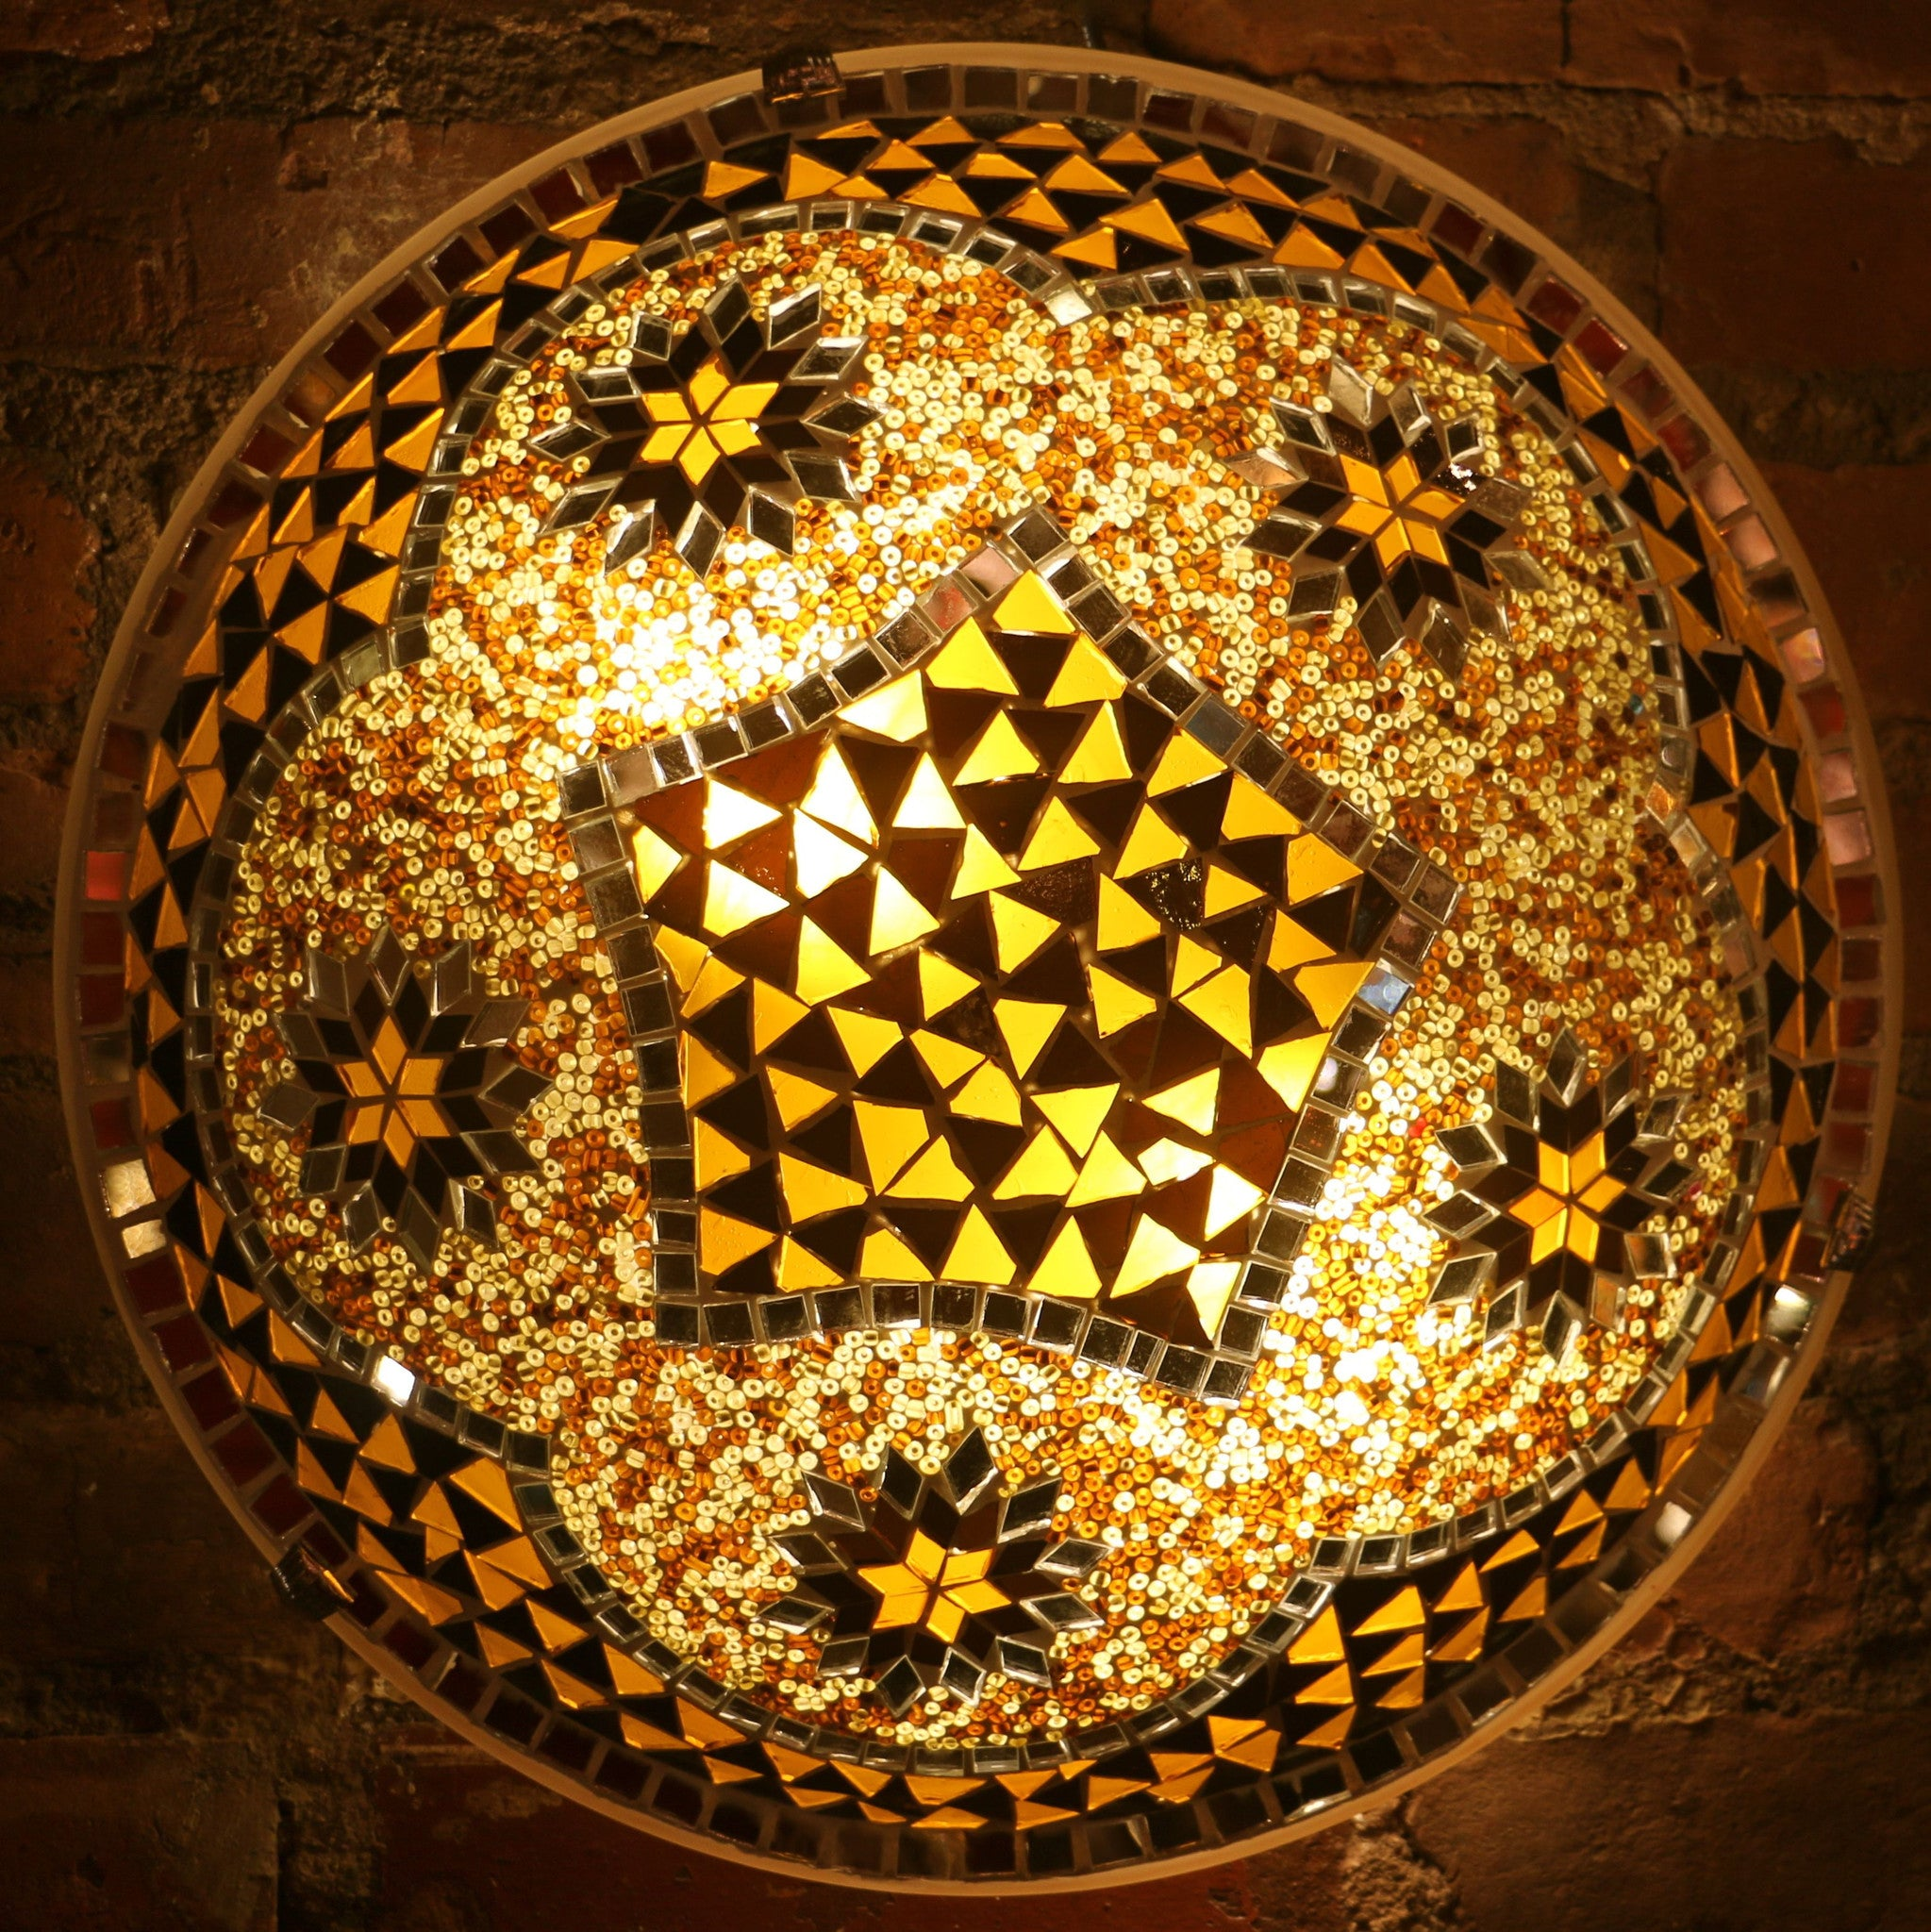 Mosaic Flush Mount for Ceiling or Wall Lamp in Amber Tones | mosaic ...